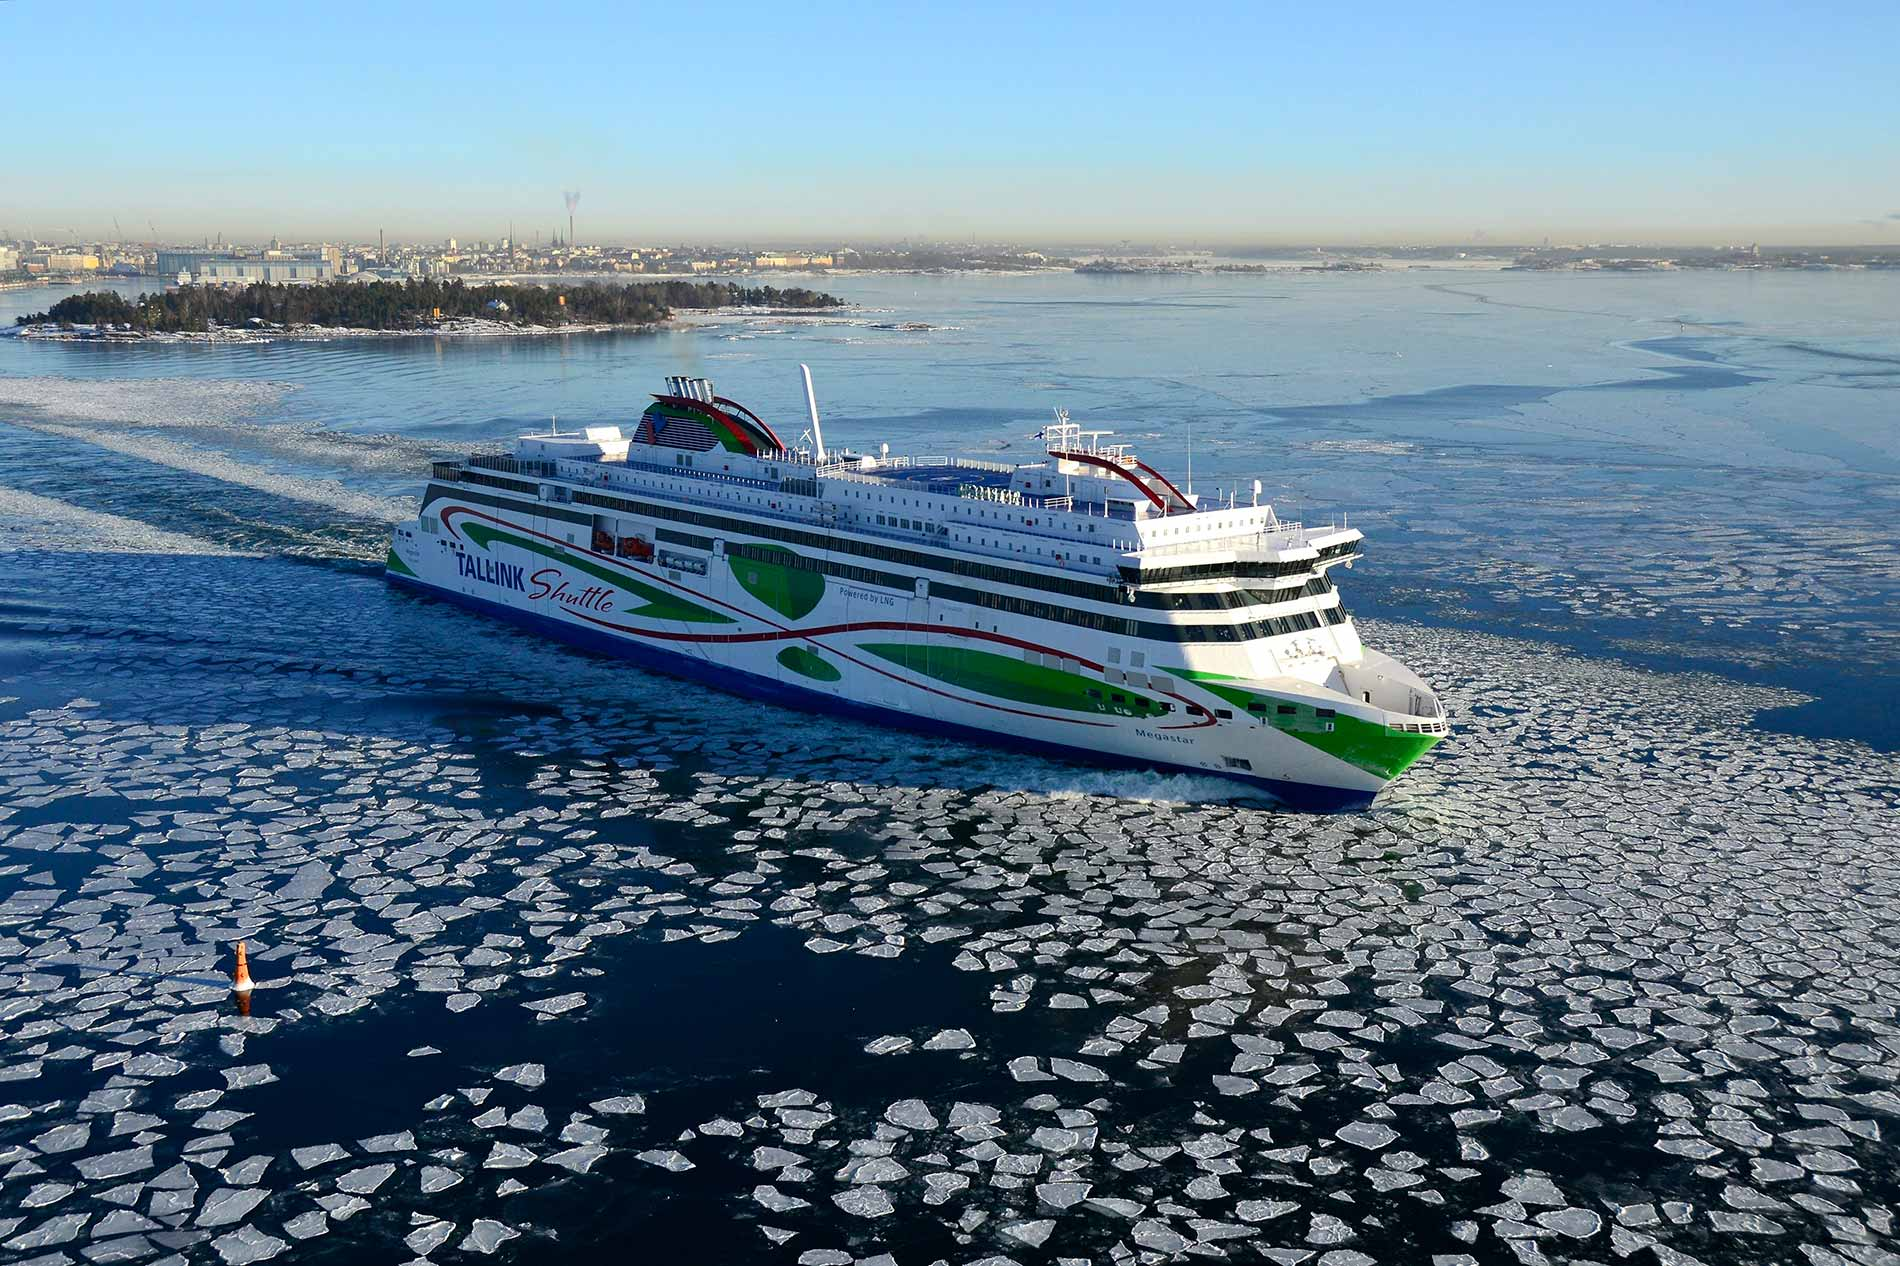 There's a New Tallink Ferry in Traffic, and It's a Luxurious One